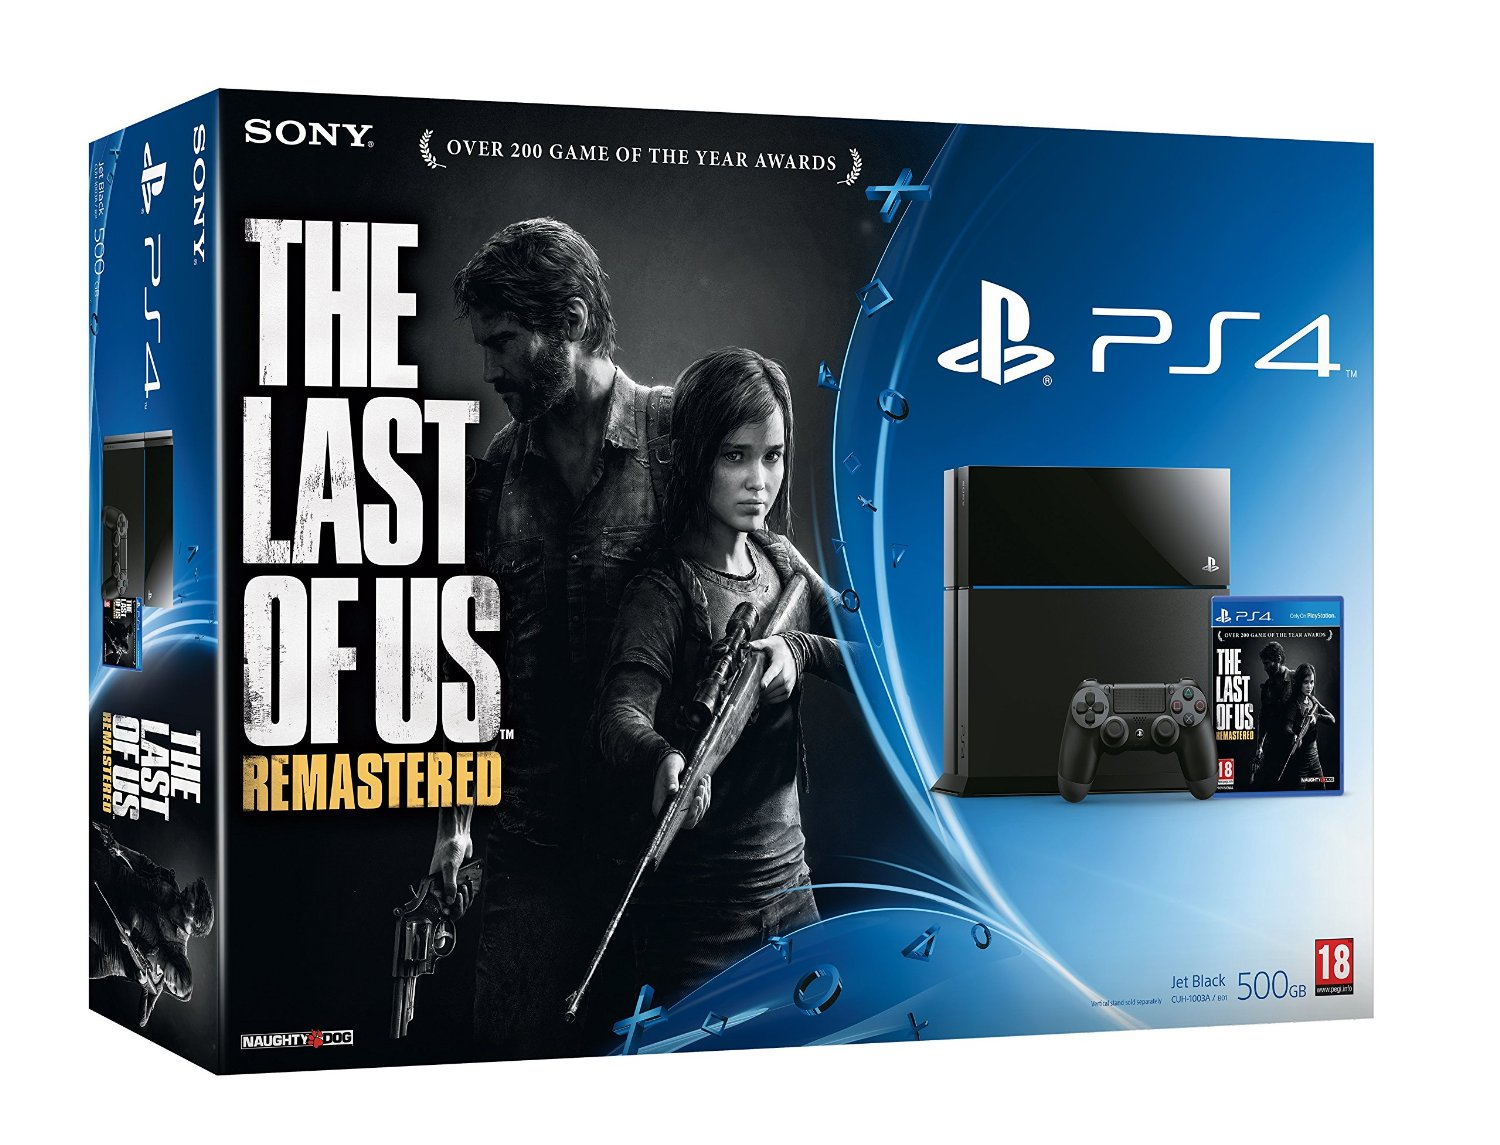 The Last of Us Remastered PlayStation 4 Bundle